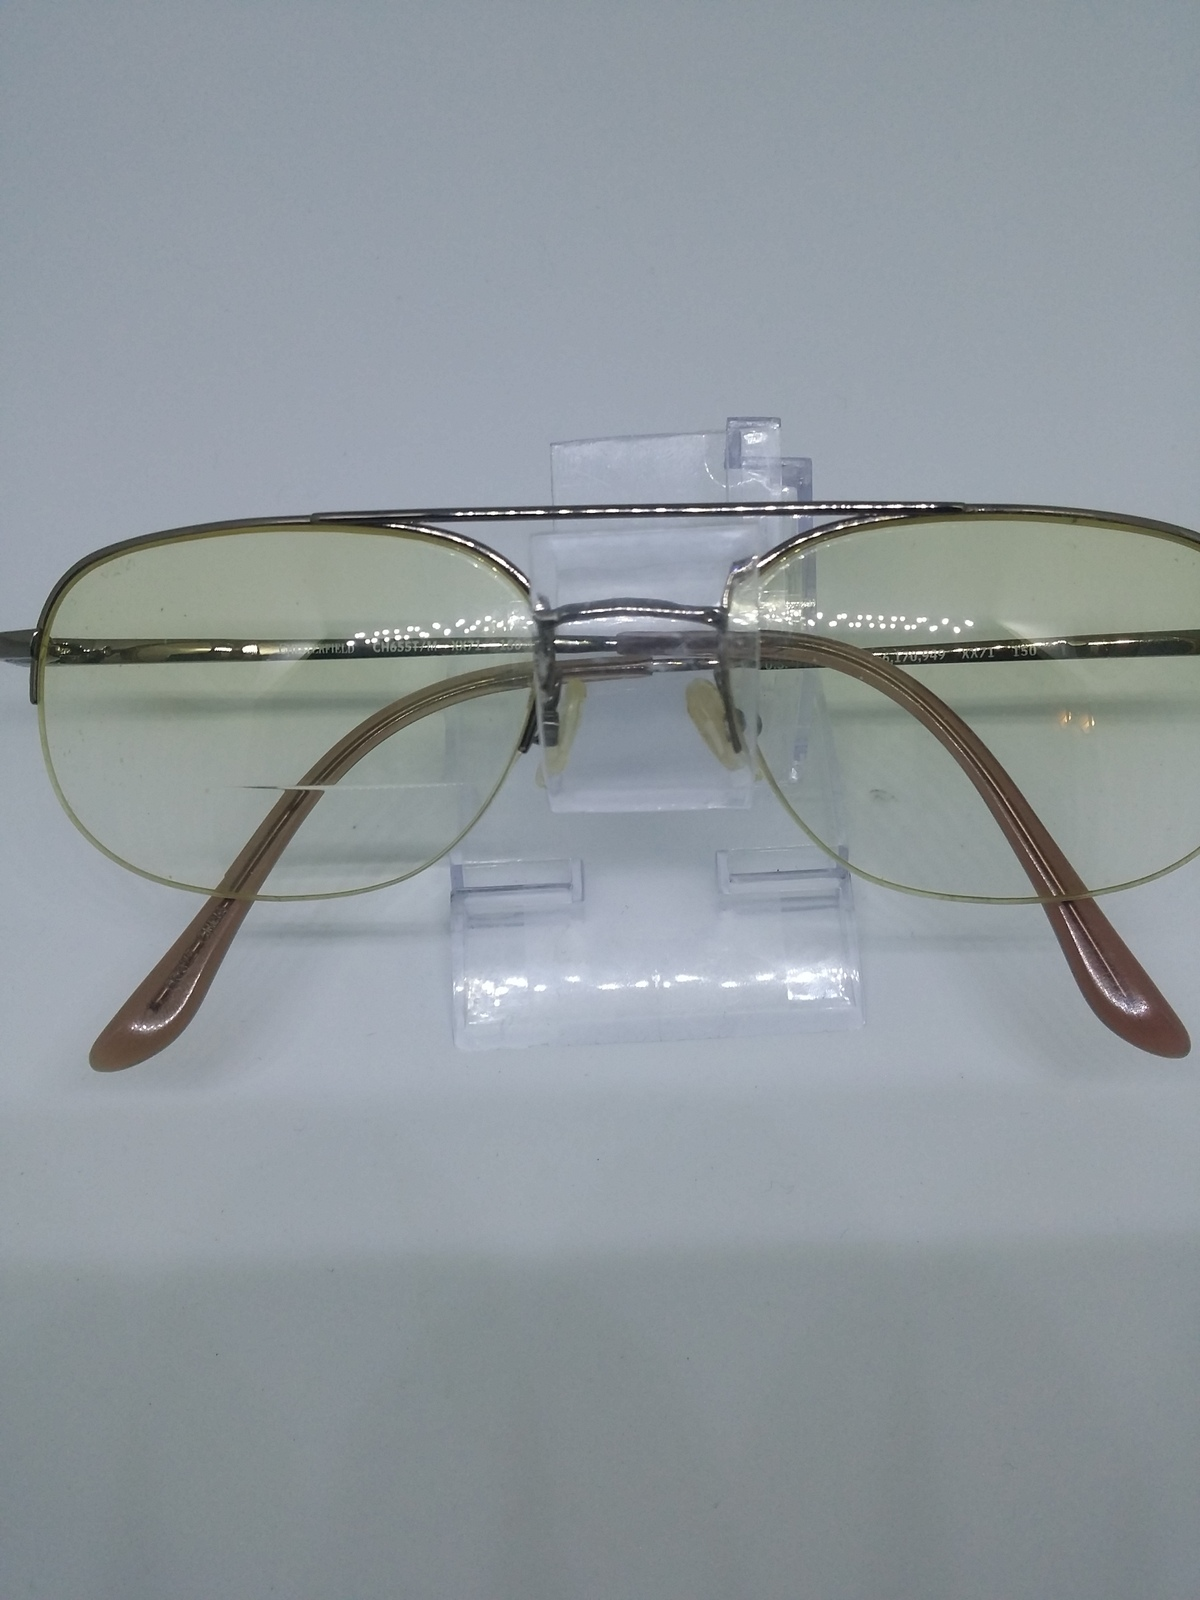 87a71556141d Chesterfield Eyeglasses  1 customer review and 1 listing